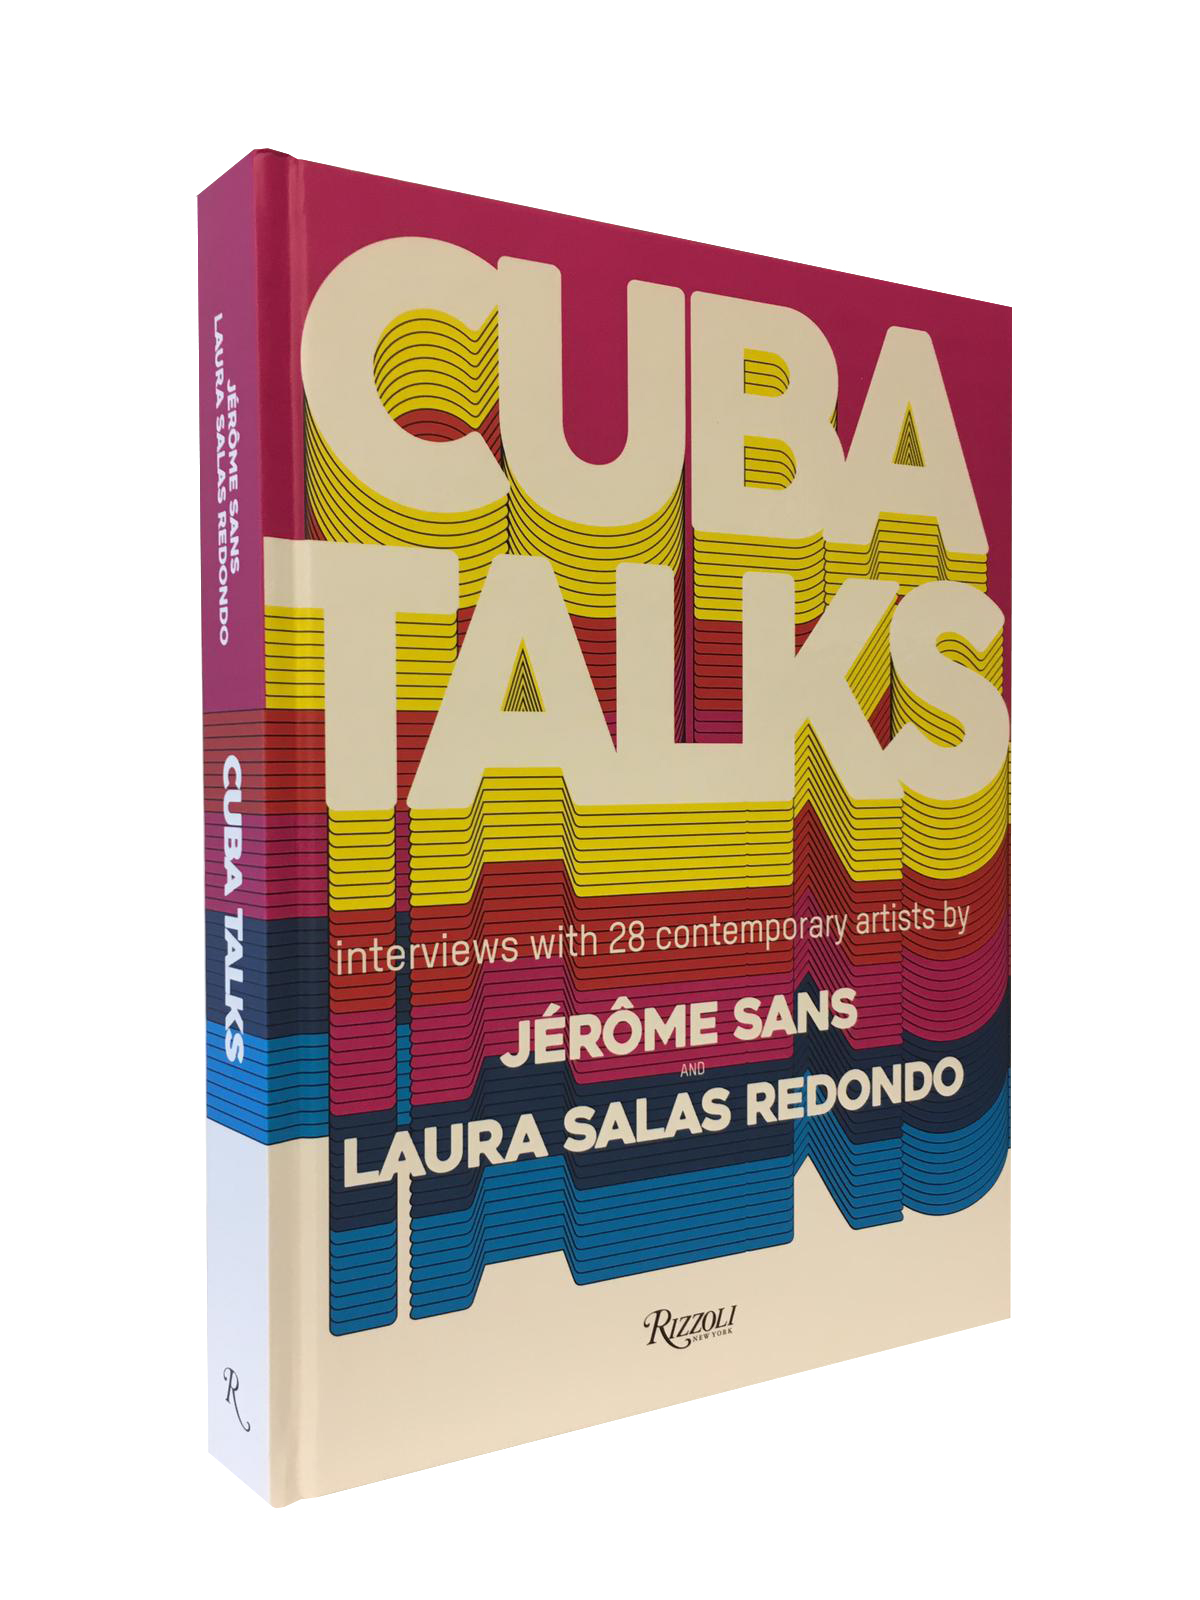 Galleria Continua - CUBA TALKS. interviews with 28 contemporary artists